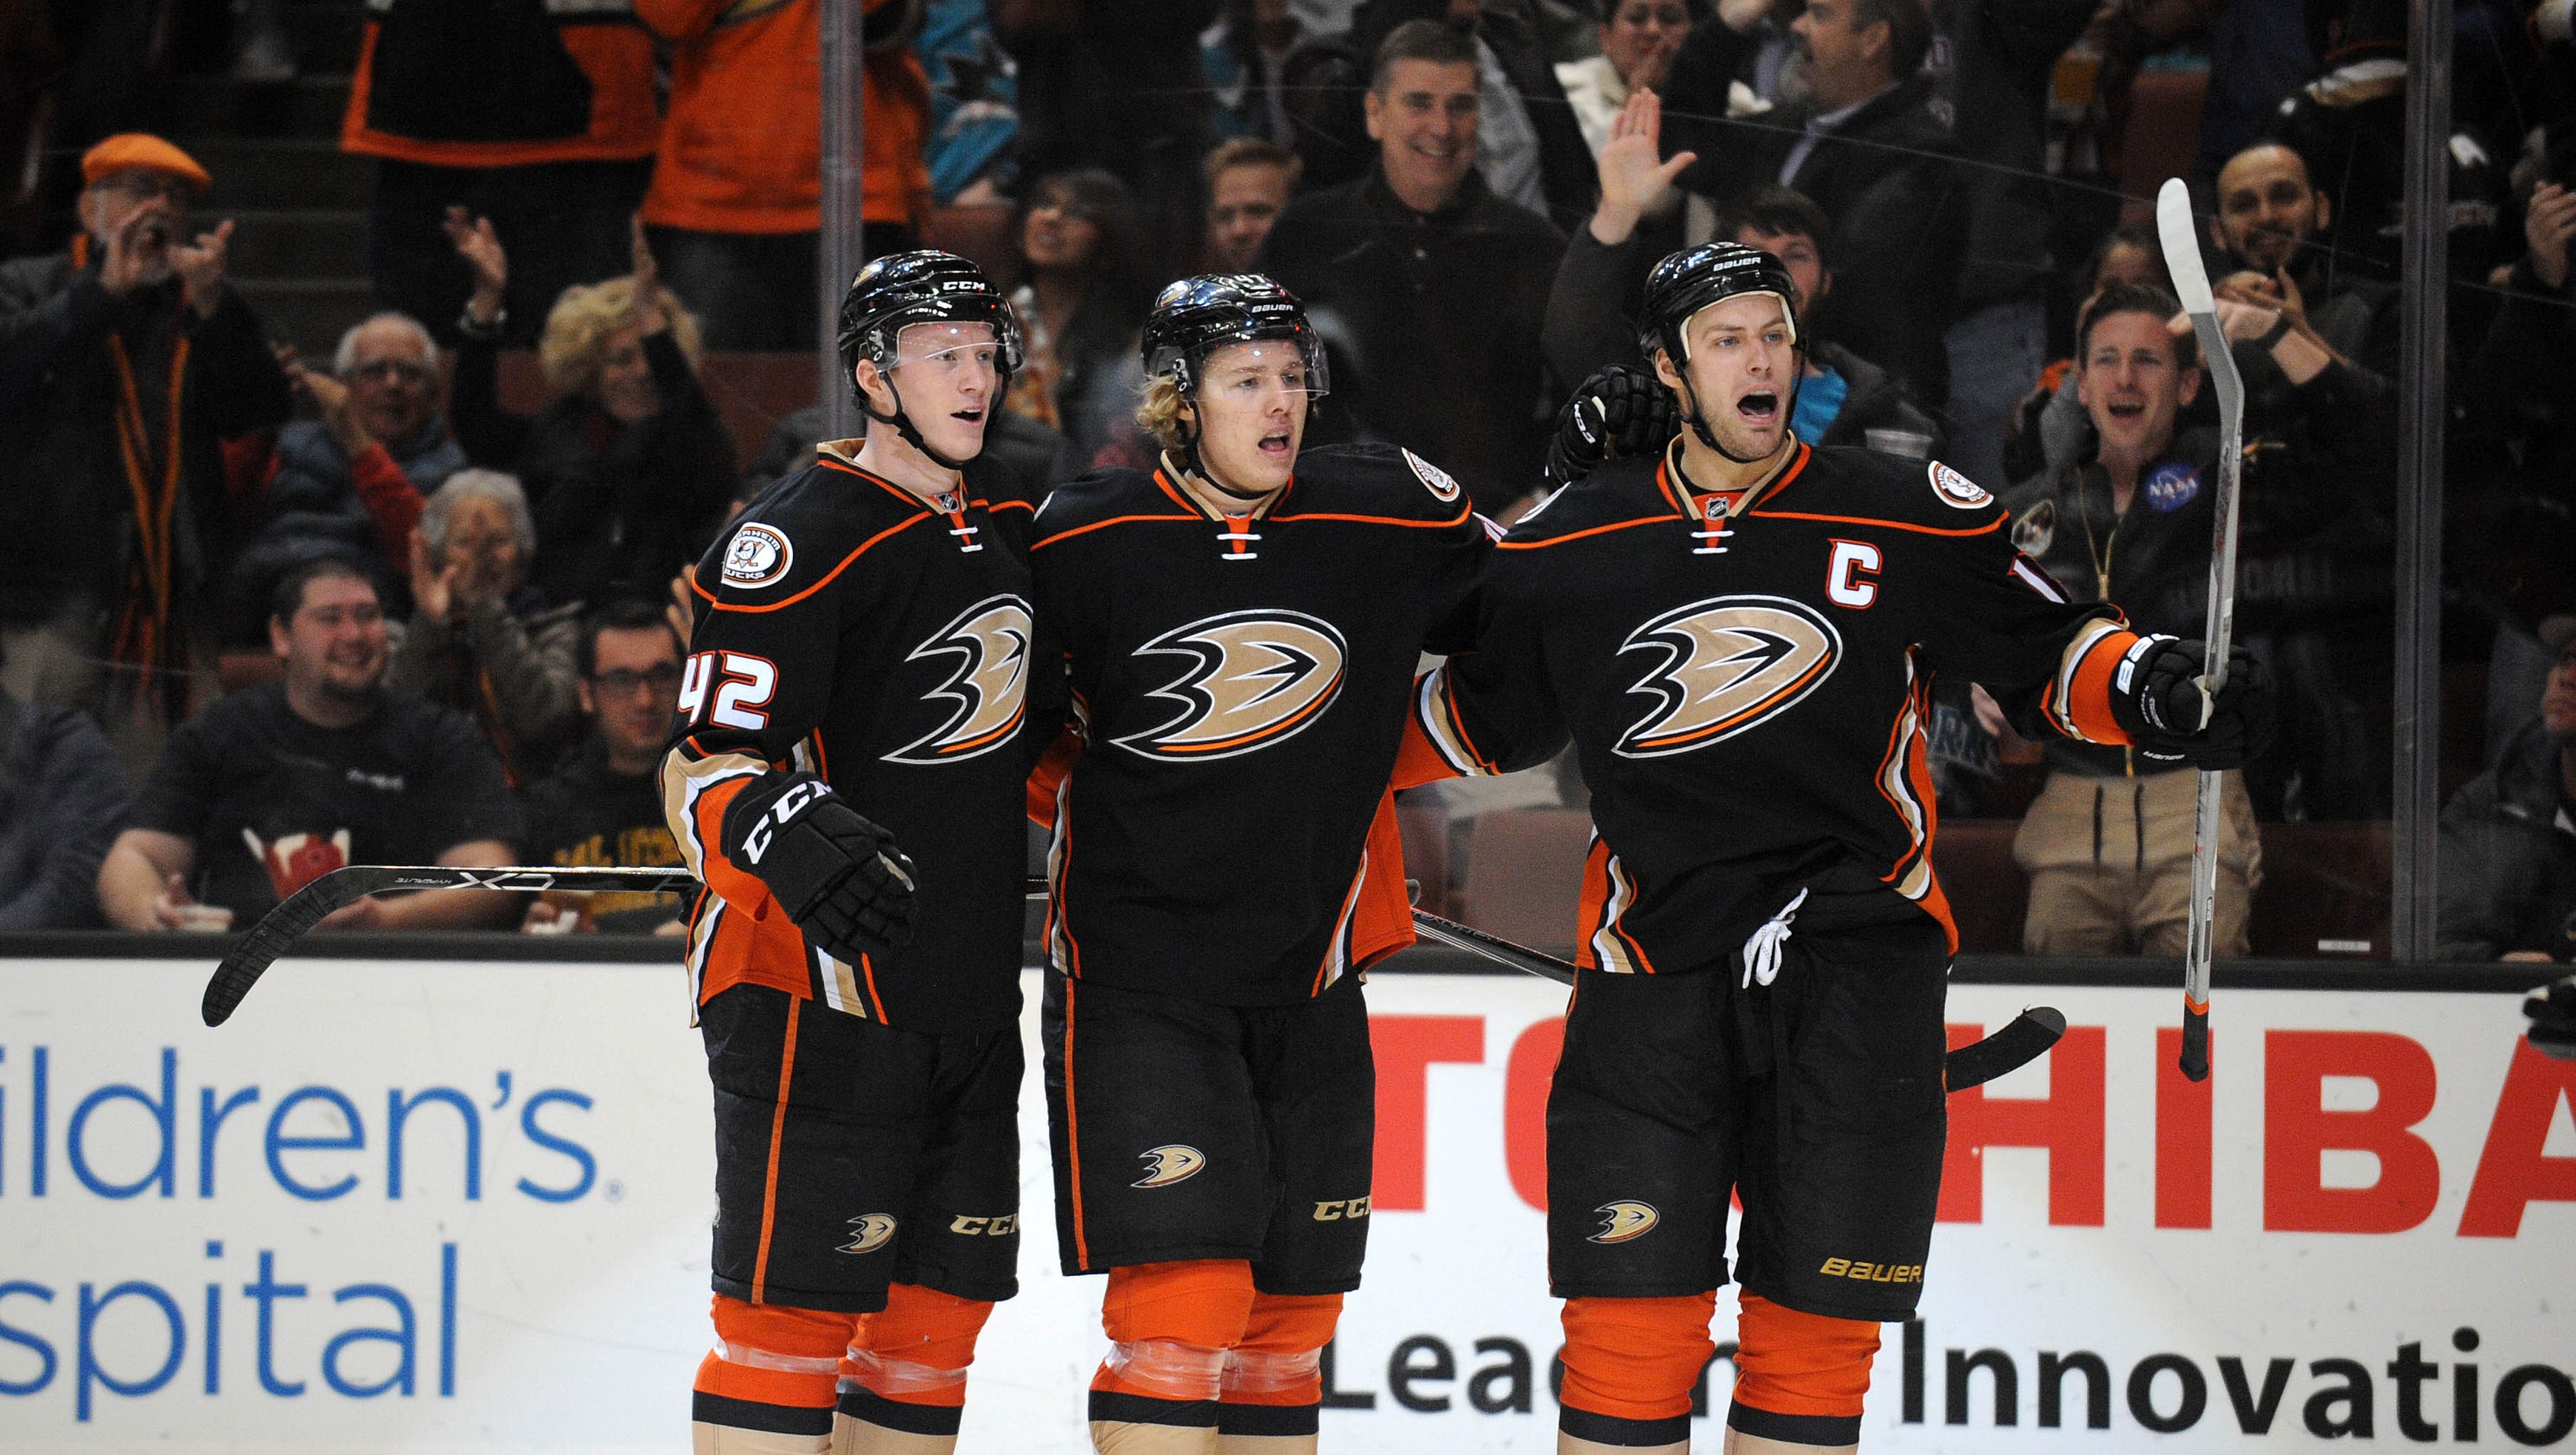 635900610598849285-usp-nhl-san-jose-sharks-at-anaheim-ducks